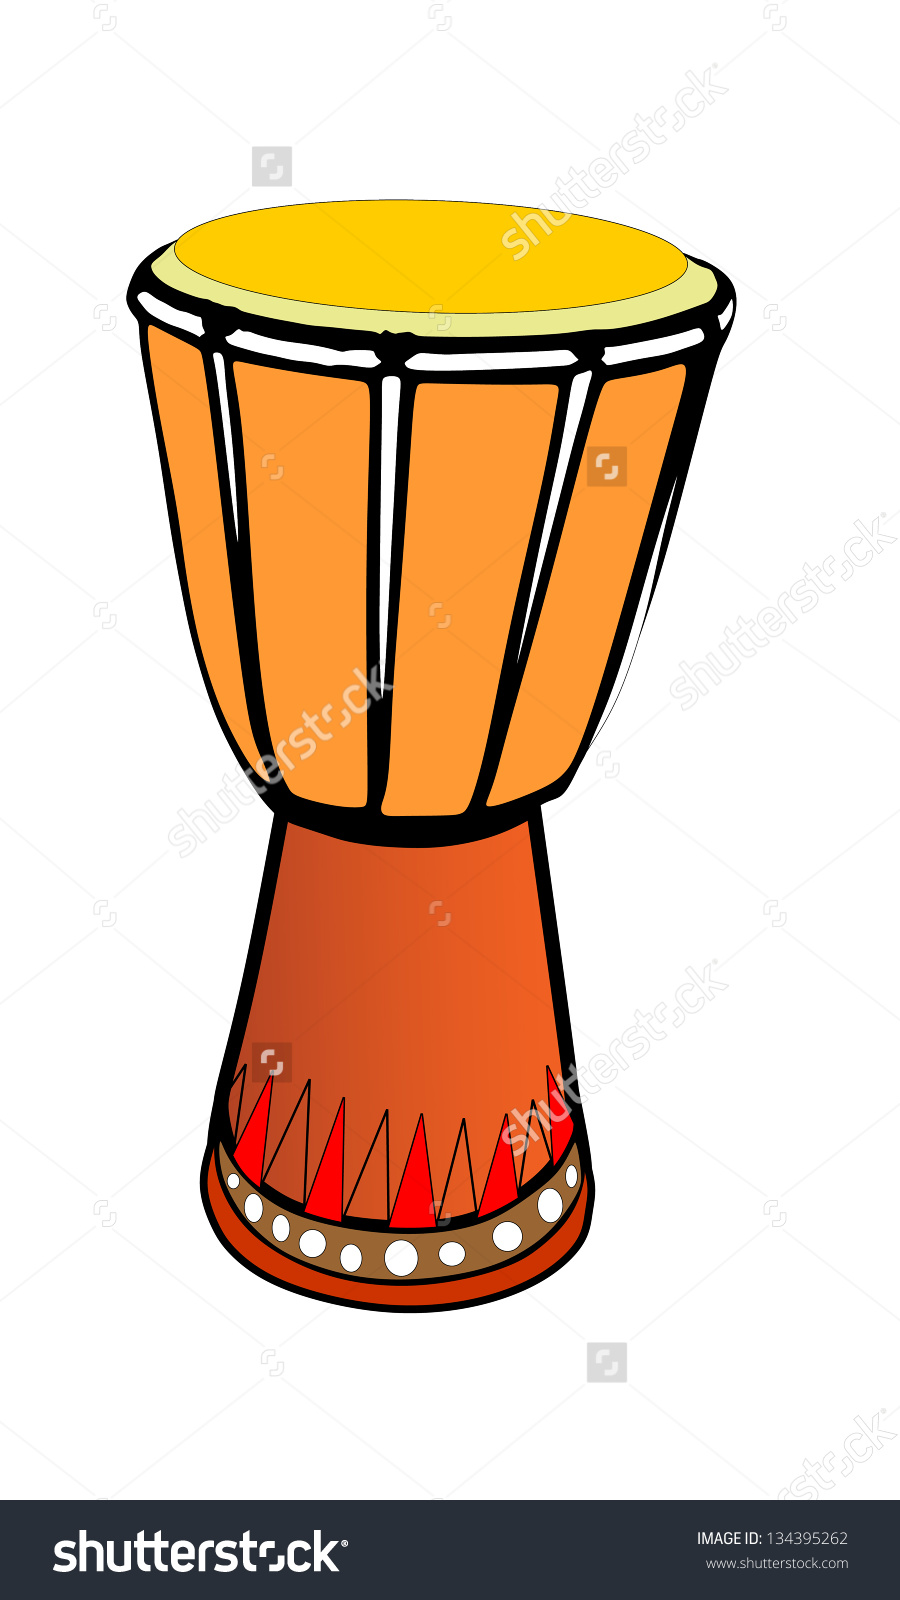 African Wooden Djembe Drum Illustration Isolated Stock Vector.